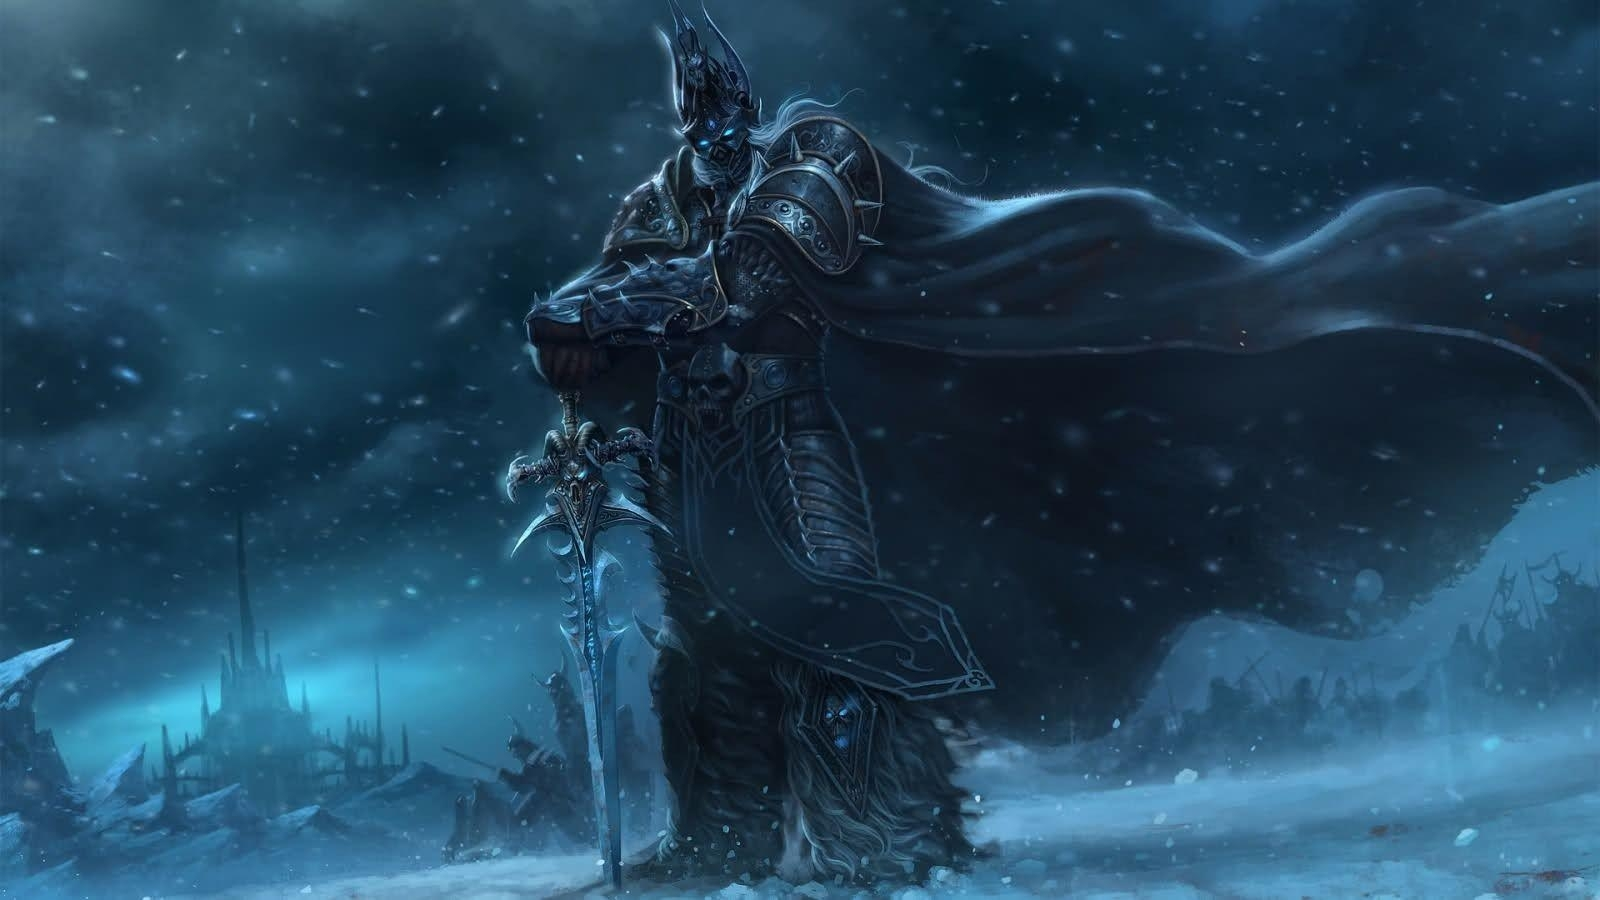 death knight wallpapers - wallpaper cave